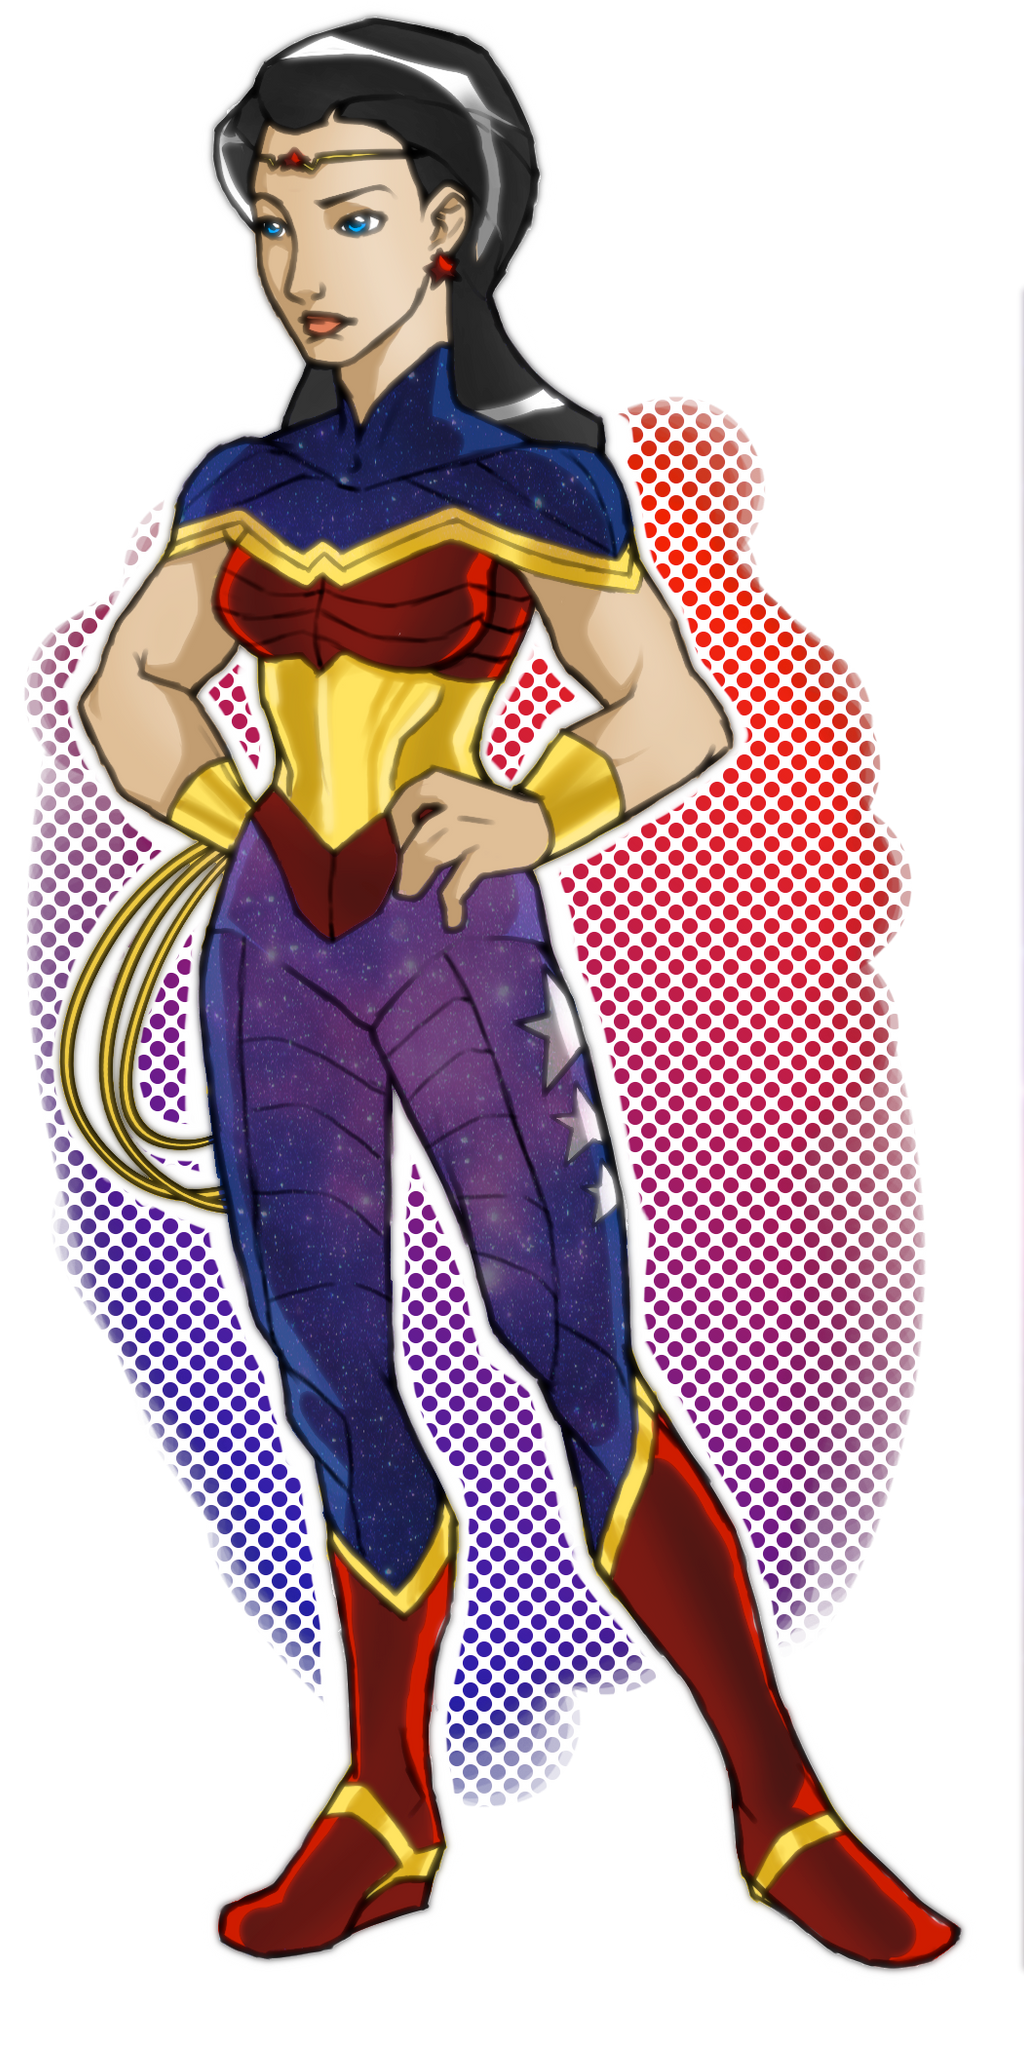 The Wonder Woman Costume Thread - Part 5 - Page 34 - The ...